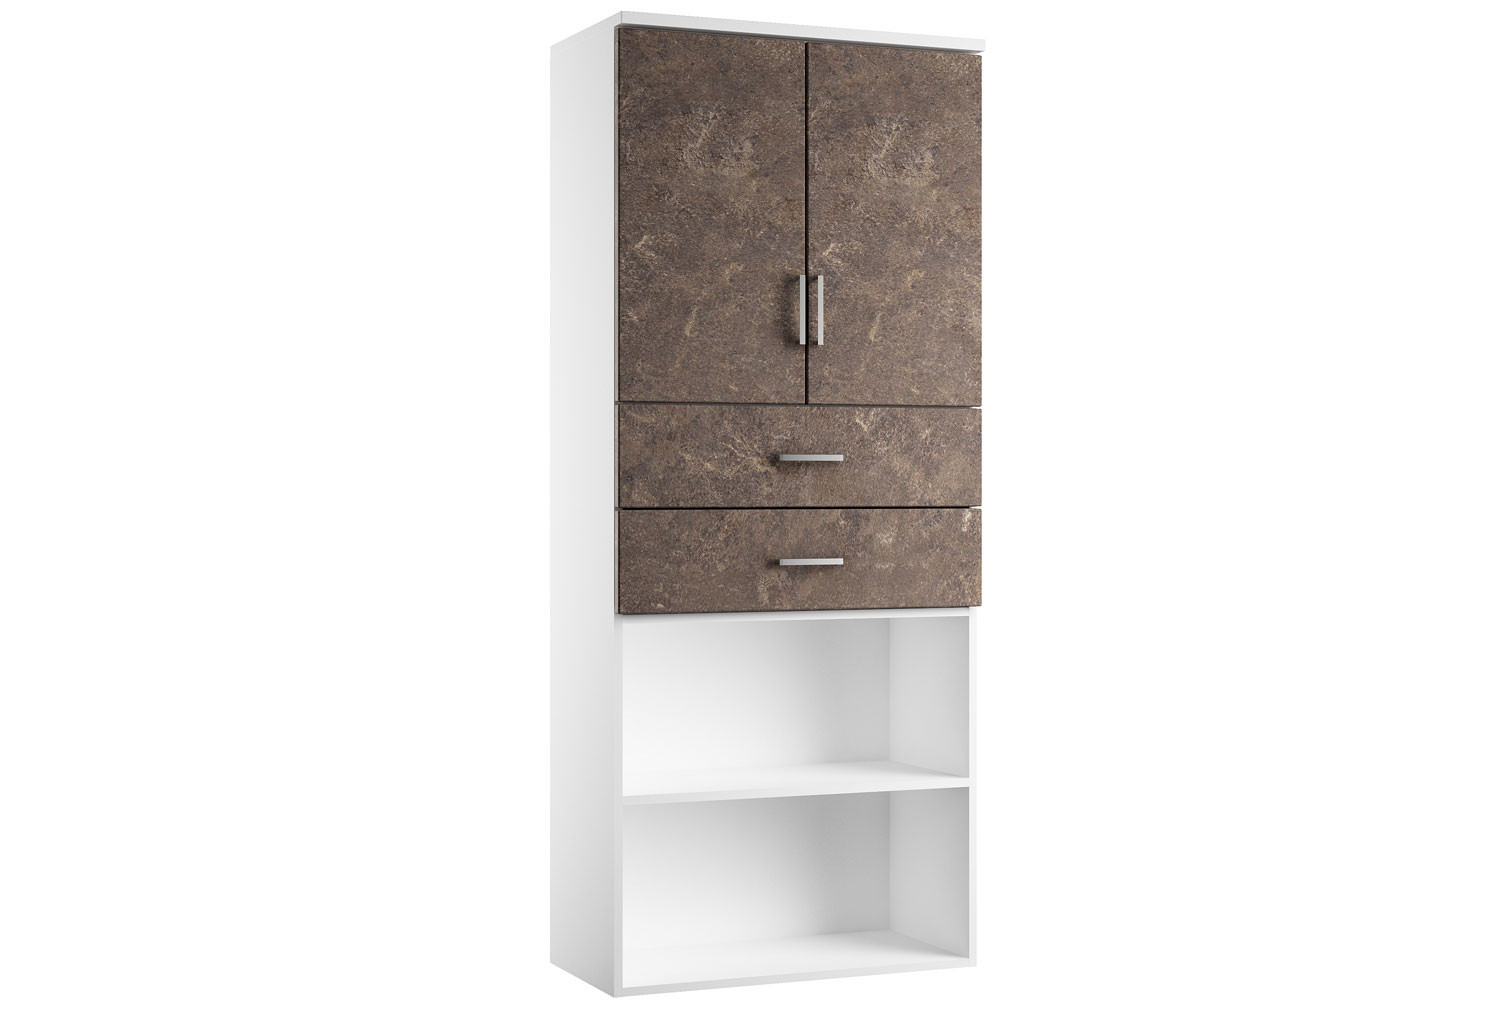 Next-Day Lasso Cupboard Combination 4 (Pitted Steel)